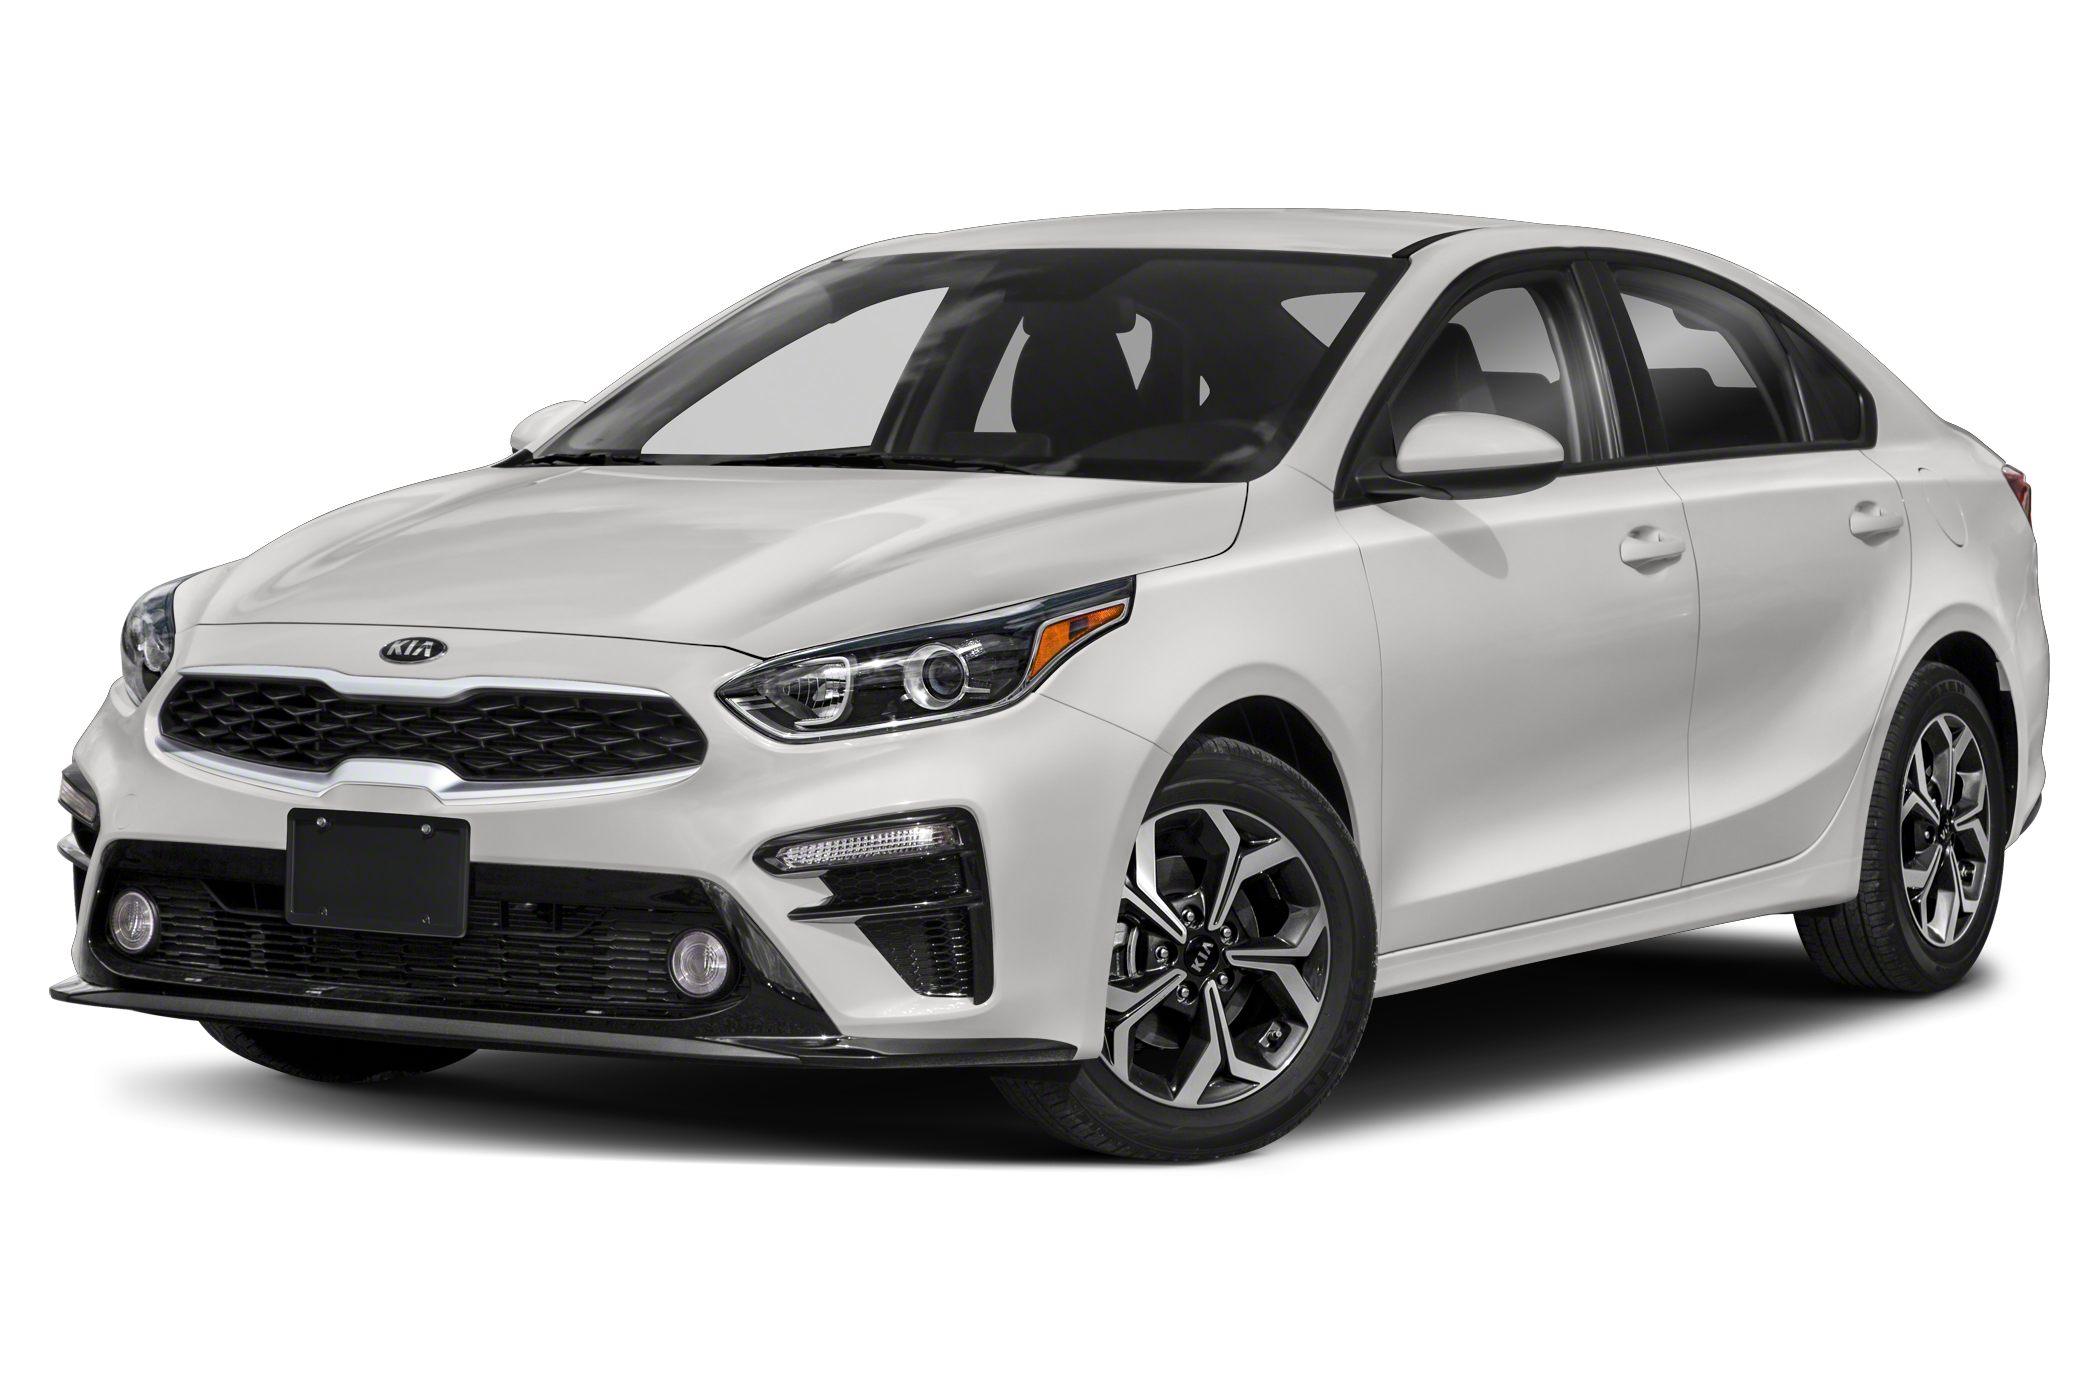 2020 Kia Forte Lxs 4dr Sedan Safety Features